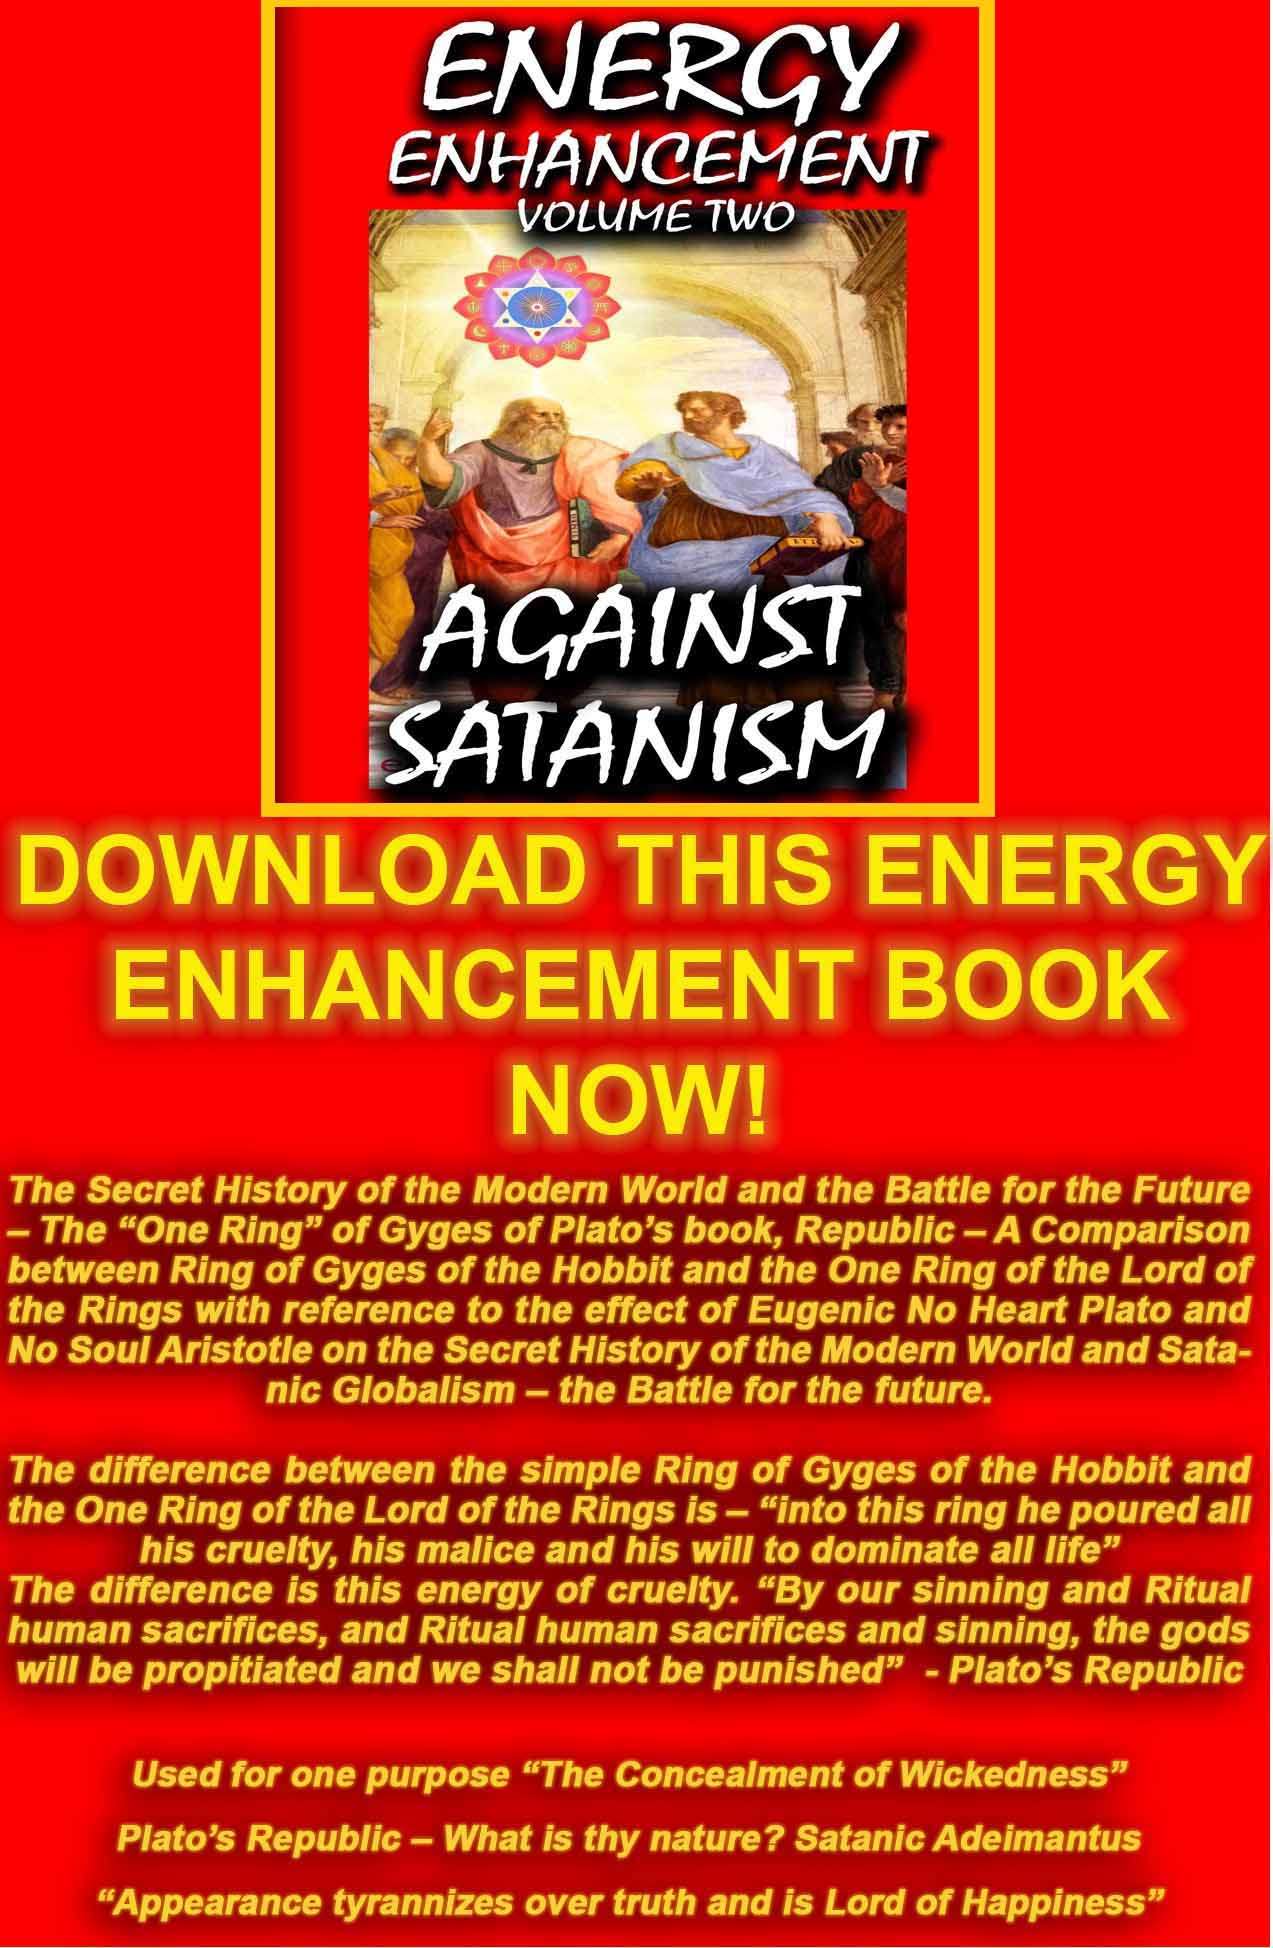 Against satanism book series 3 satanism and luciferianism defined by httpenergyenhancementsacred energyagainst satanism volume 2against satanism volume 2pdf fandeluxe Choice Image